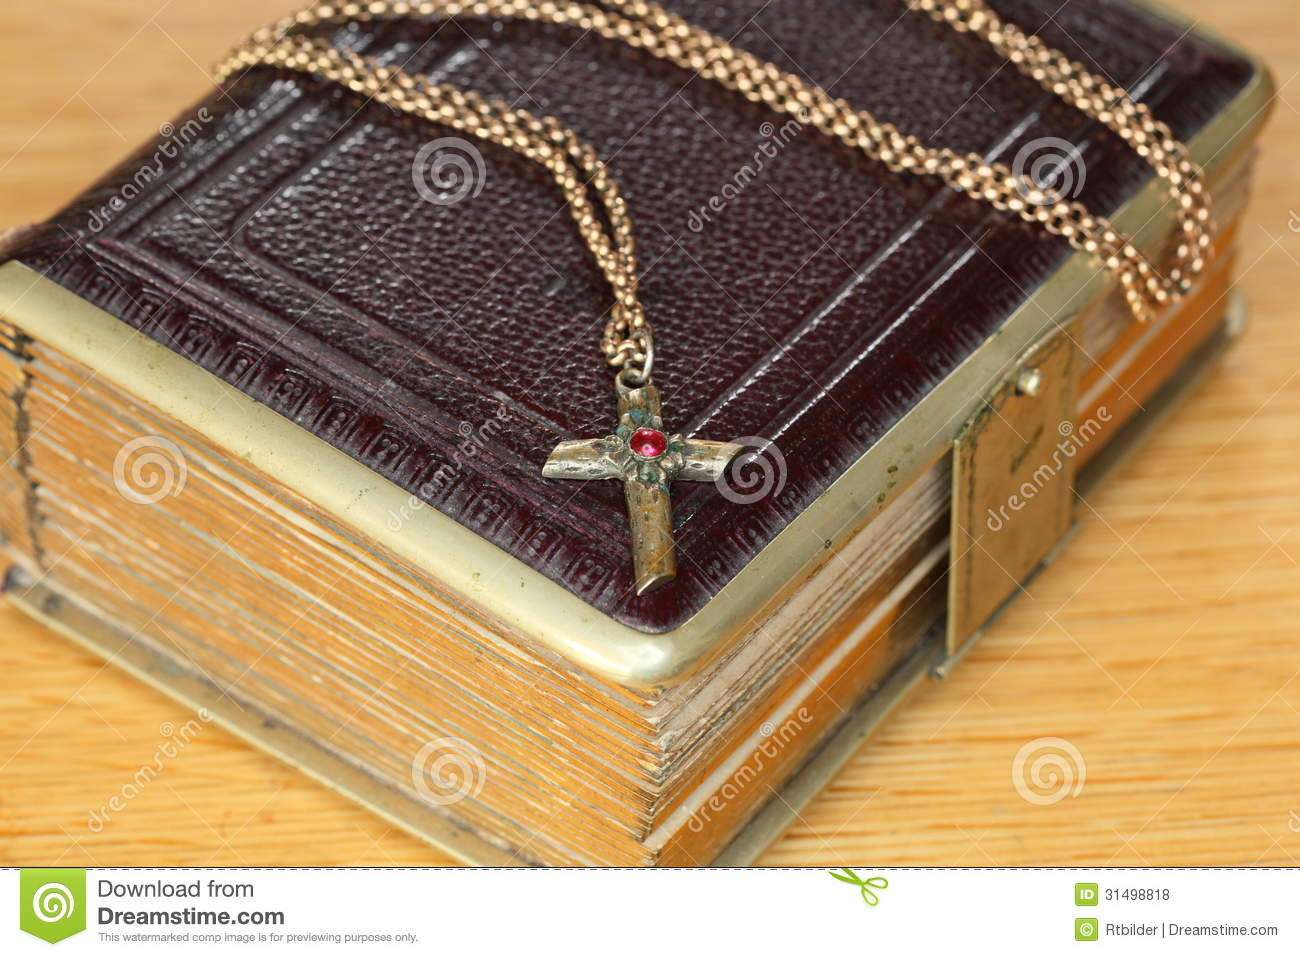 Religious Things Royalty Free Stock Photos Image 31498818